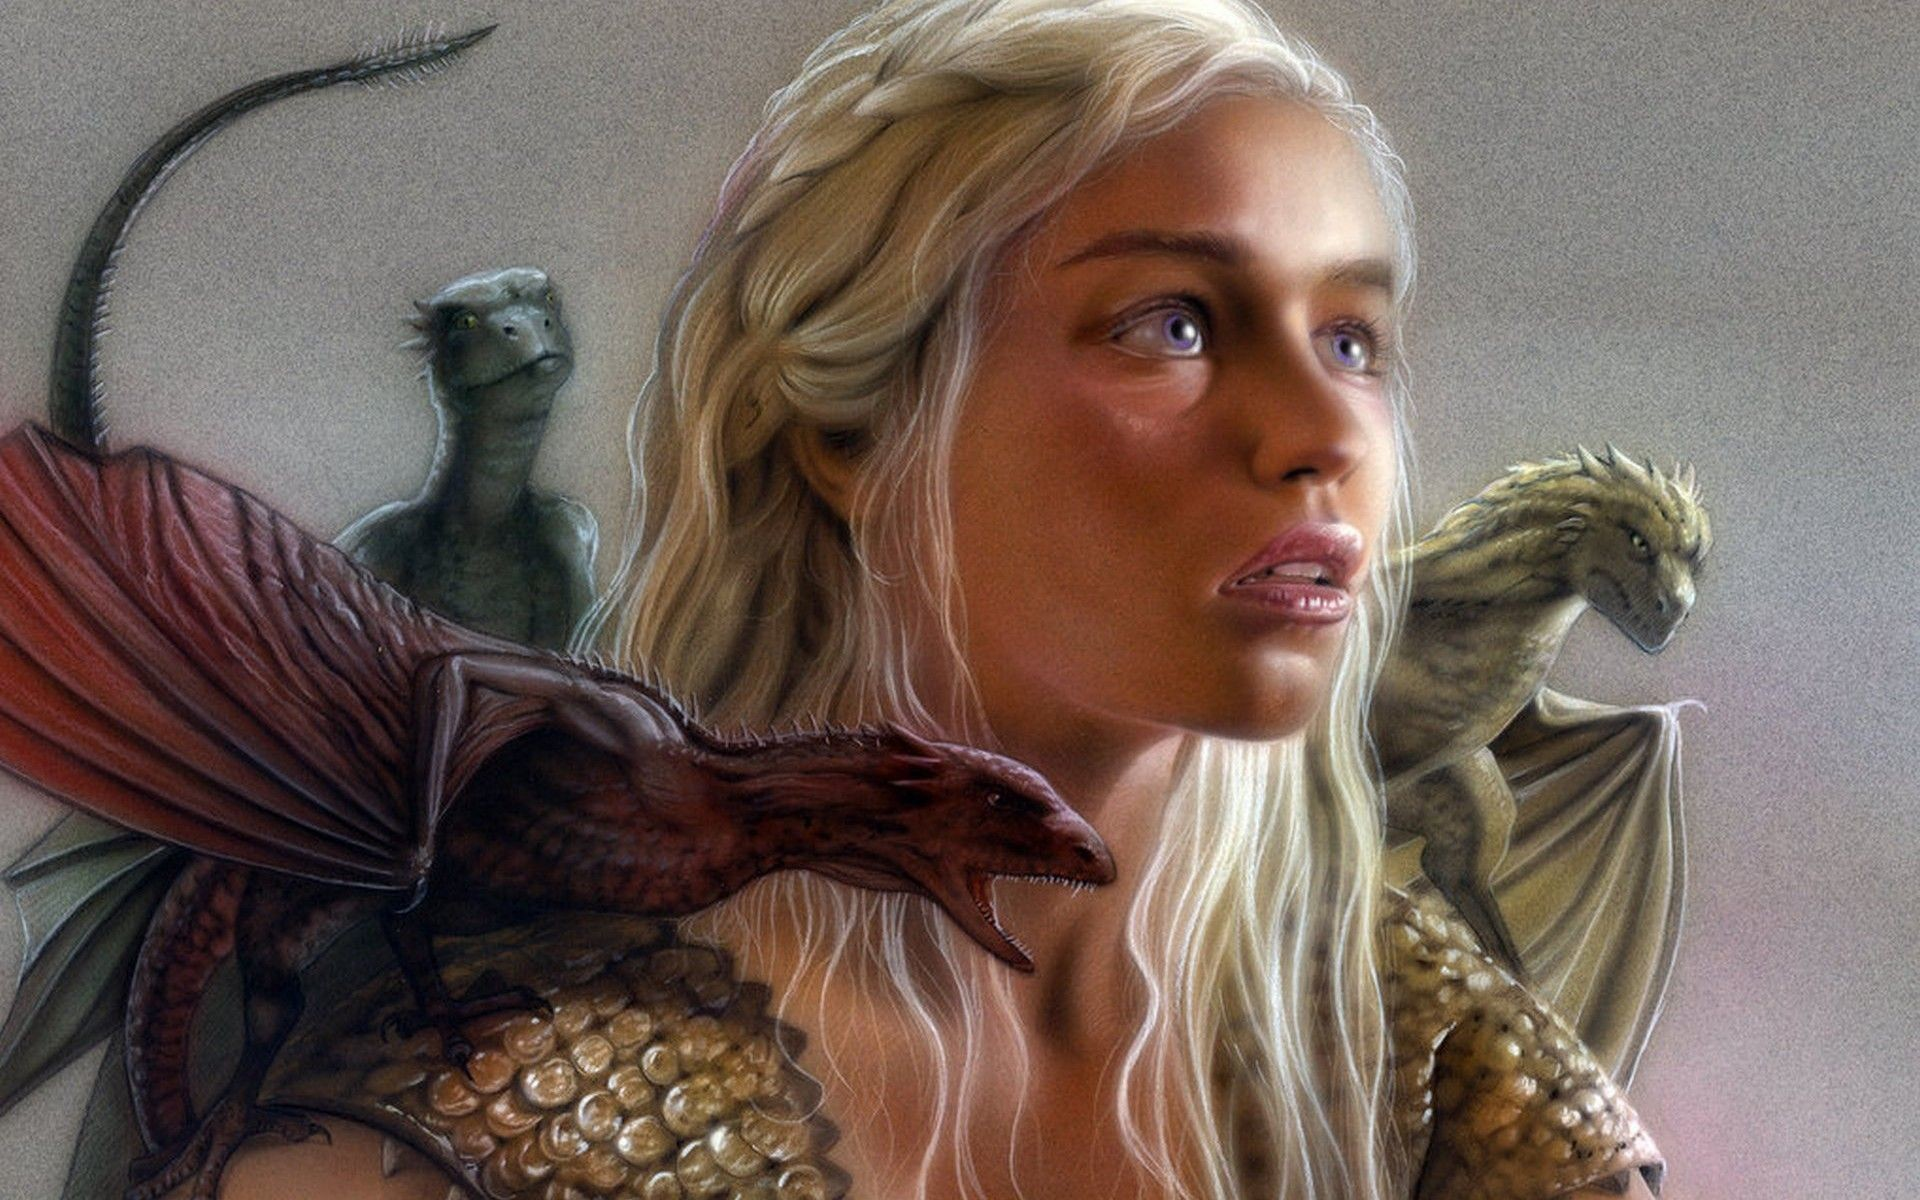 1920x1200 Game of Thrones images Mother of Dragons HD wallpaper and .